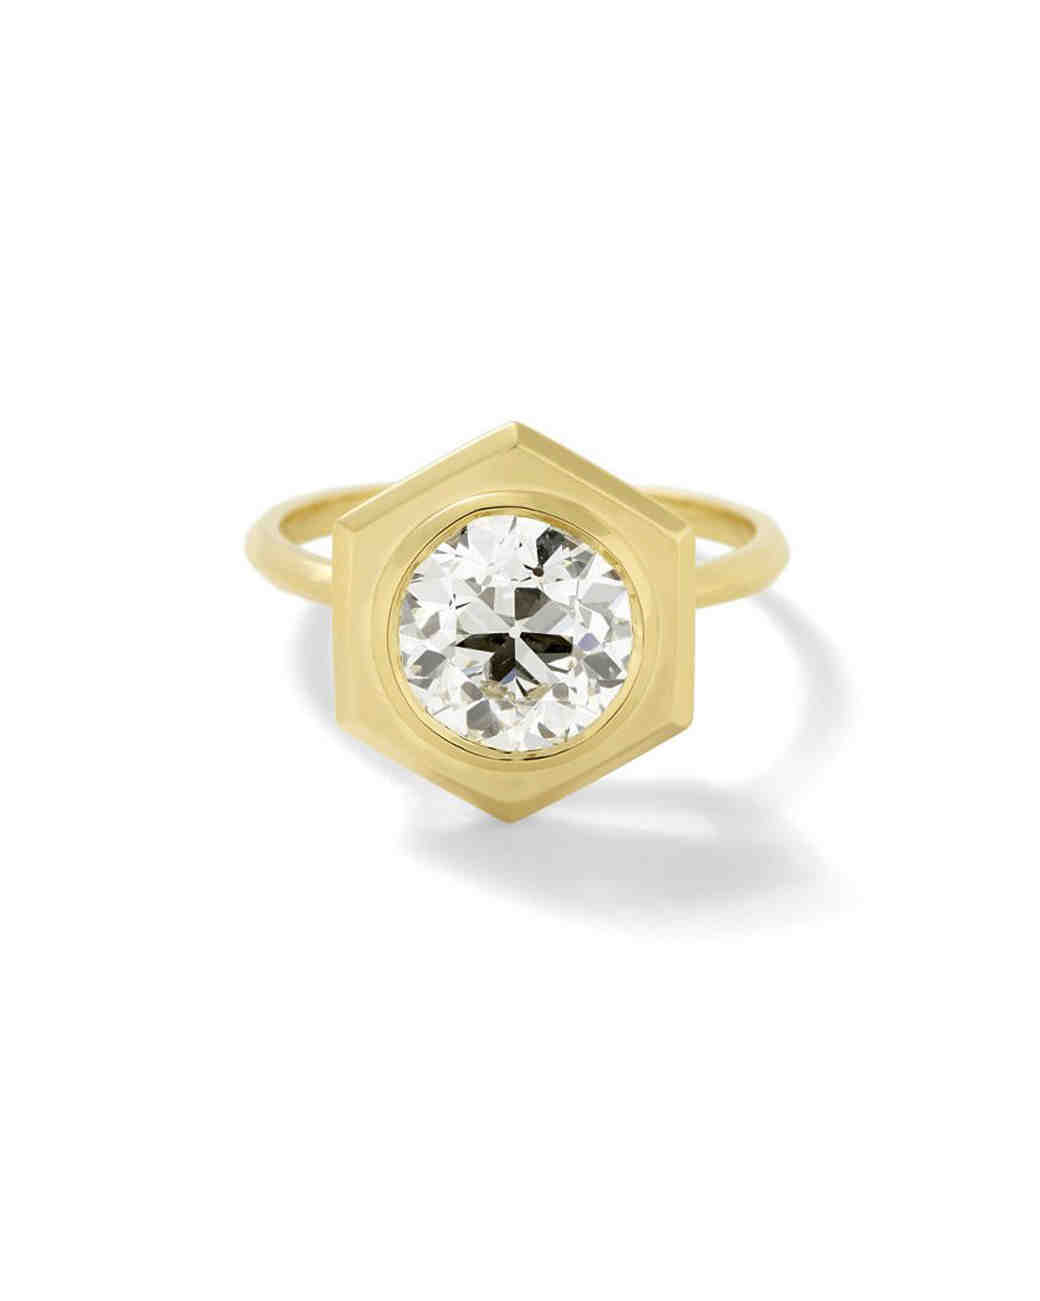 18-Karat La Nouvelle Yellow Gold Ring